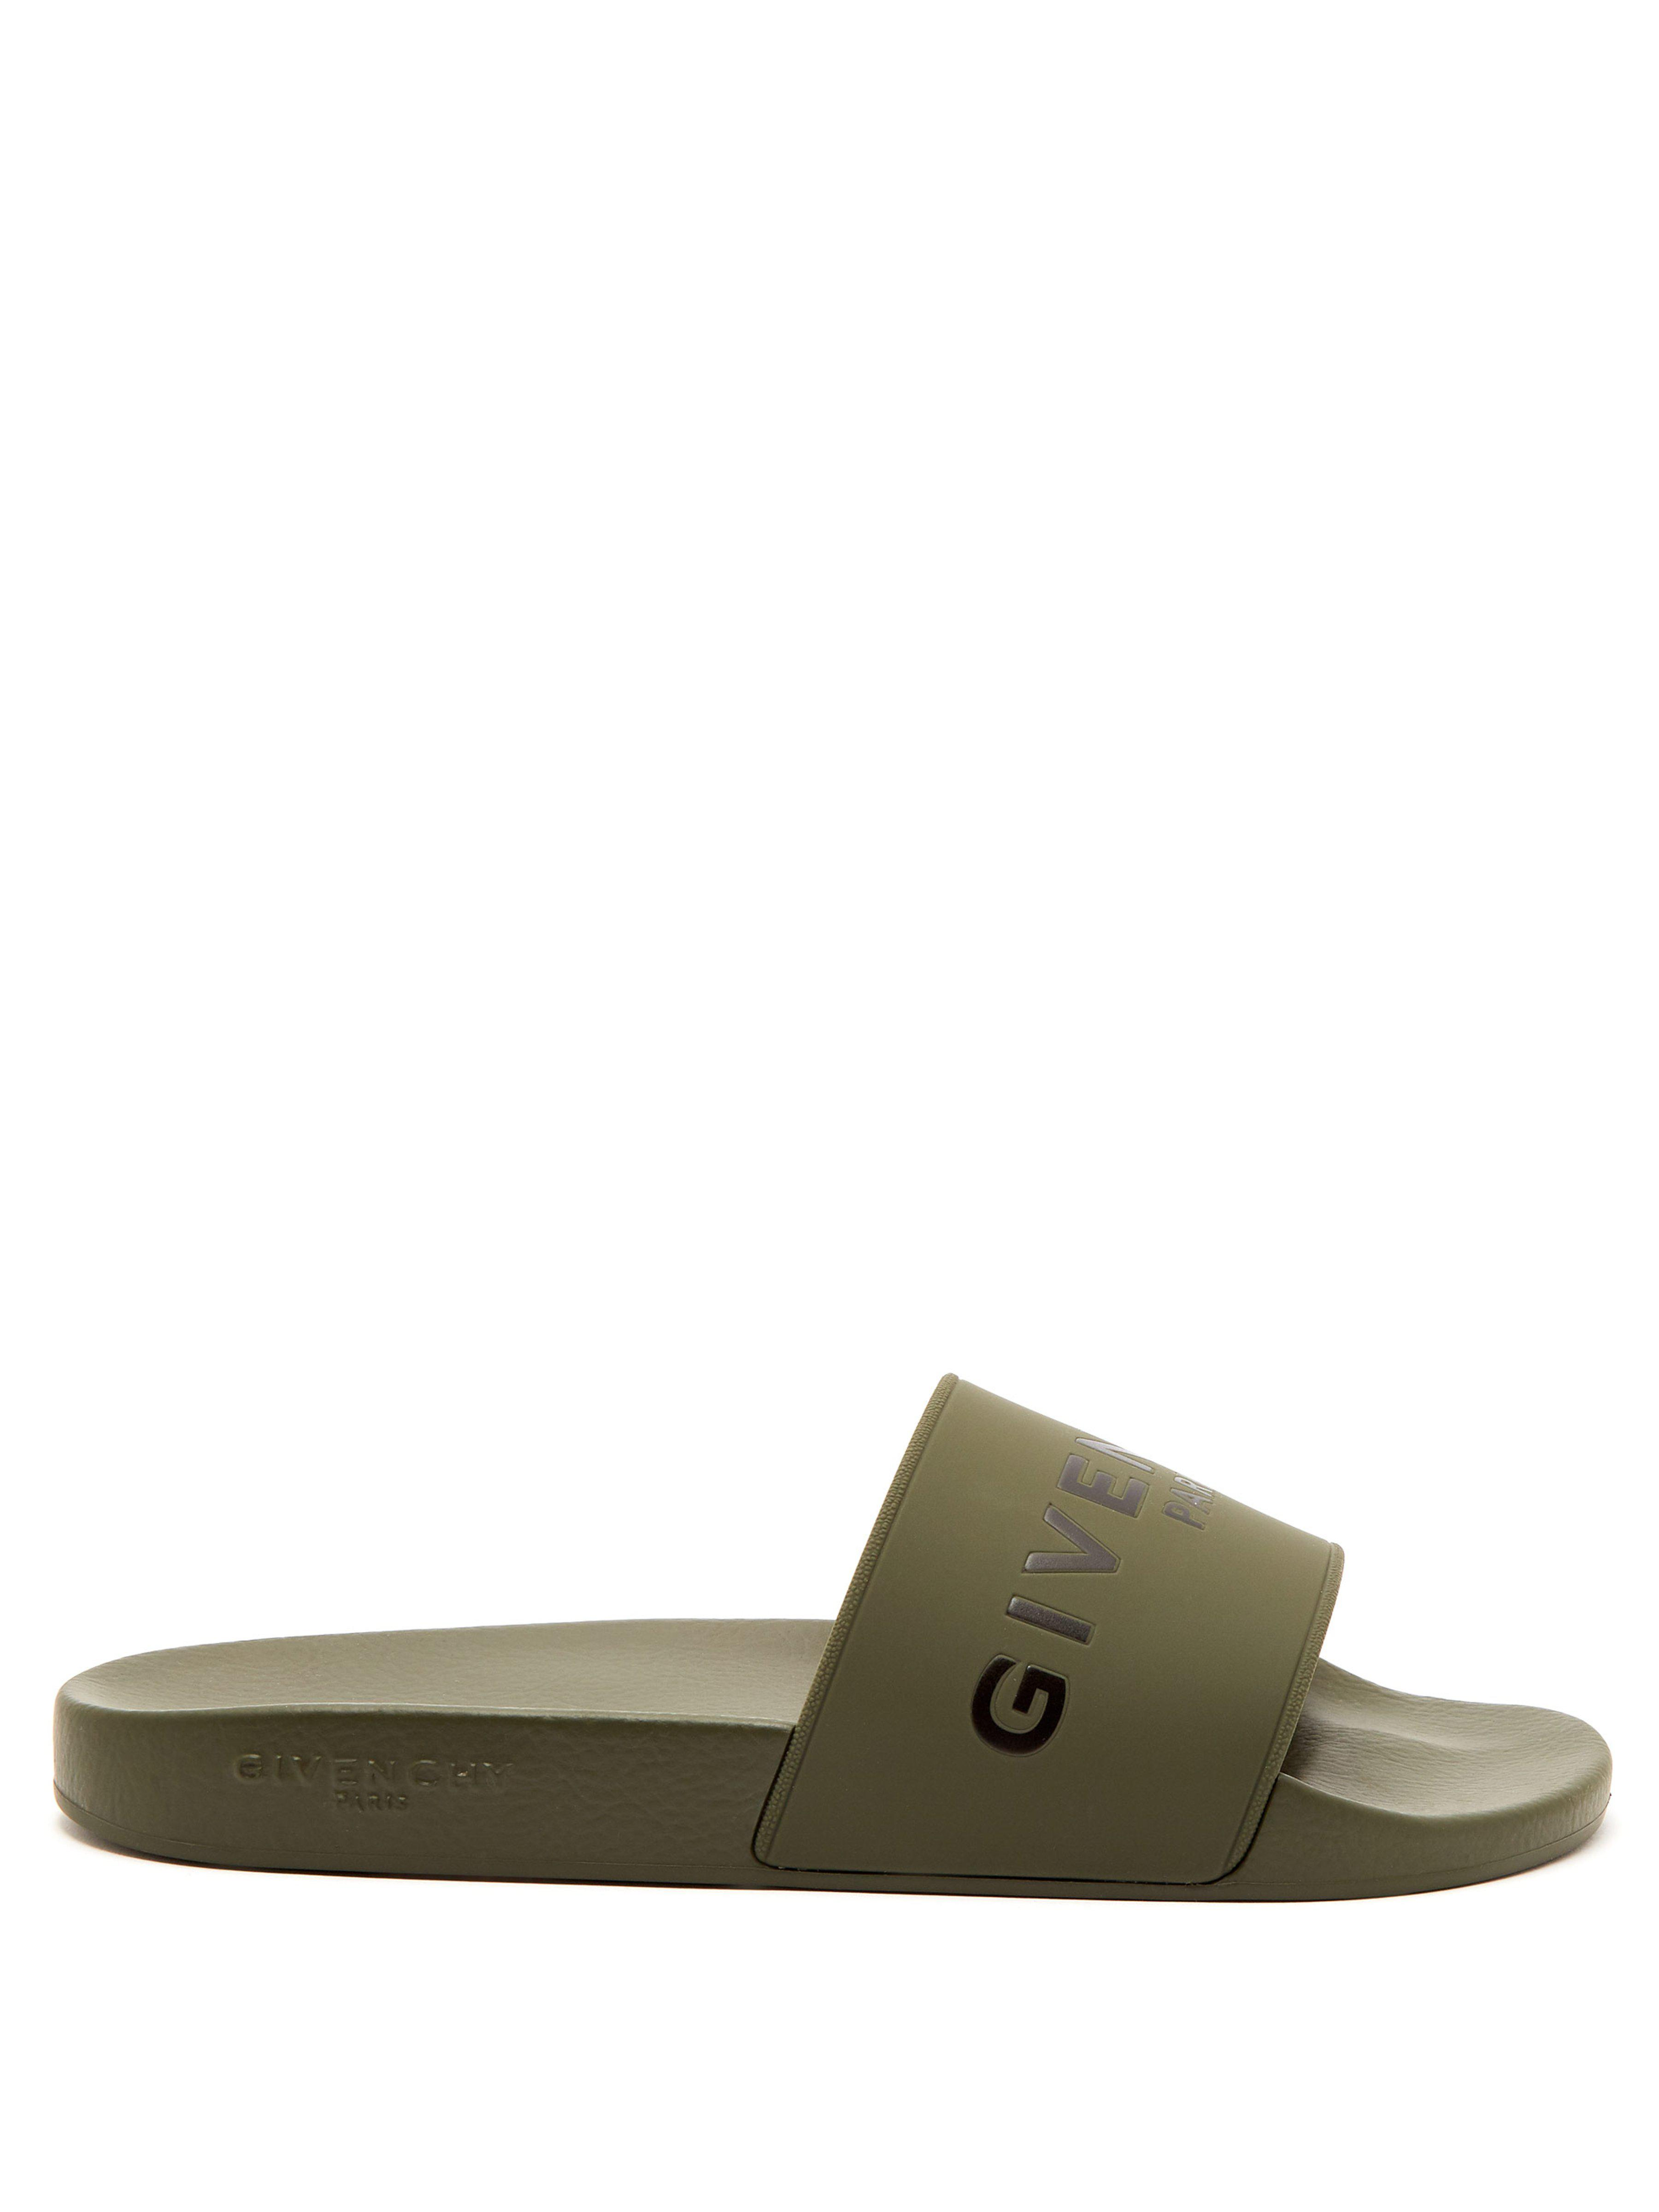 ee711b0401c3e Givenchy Rubber Slides for Men - Lyst